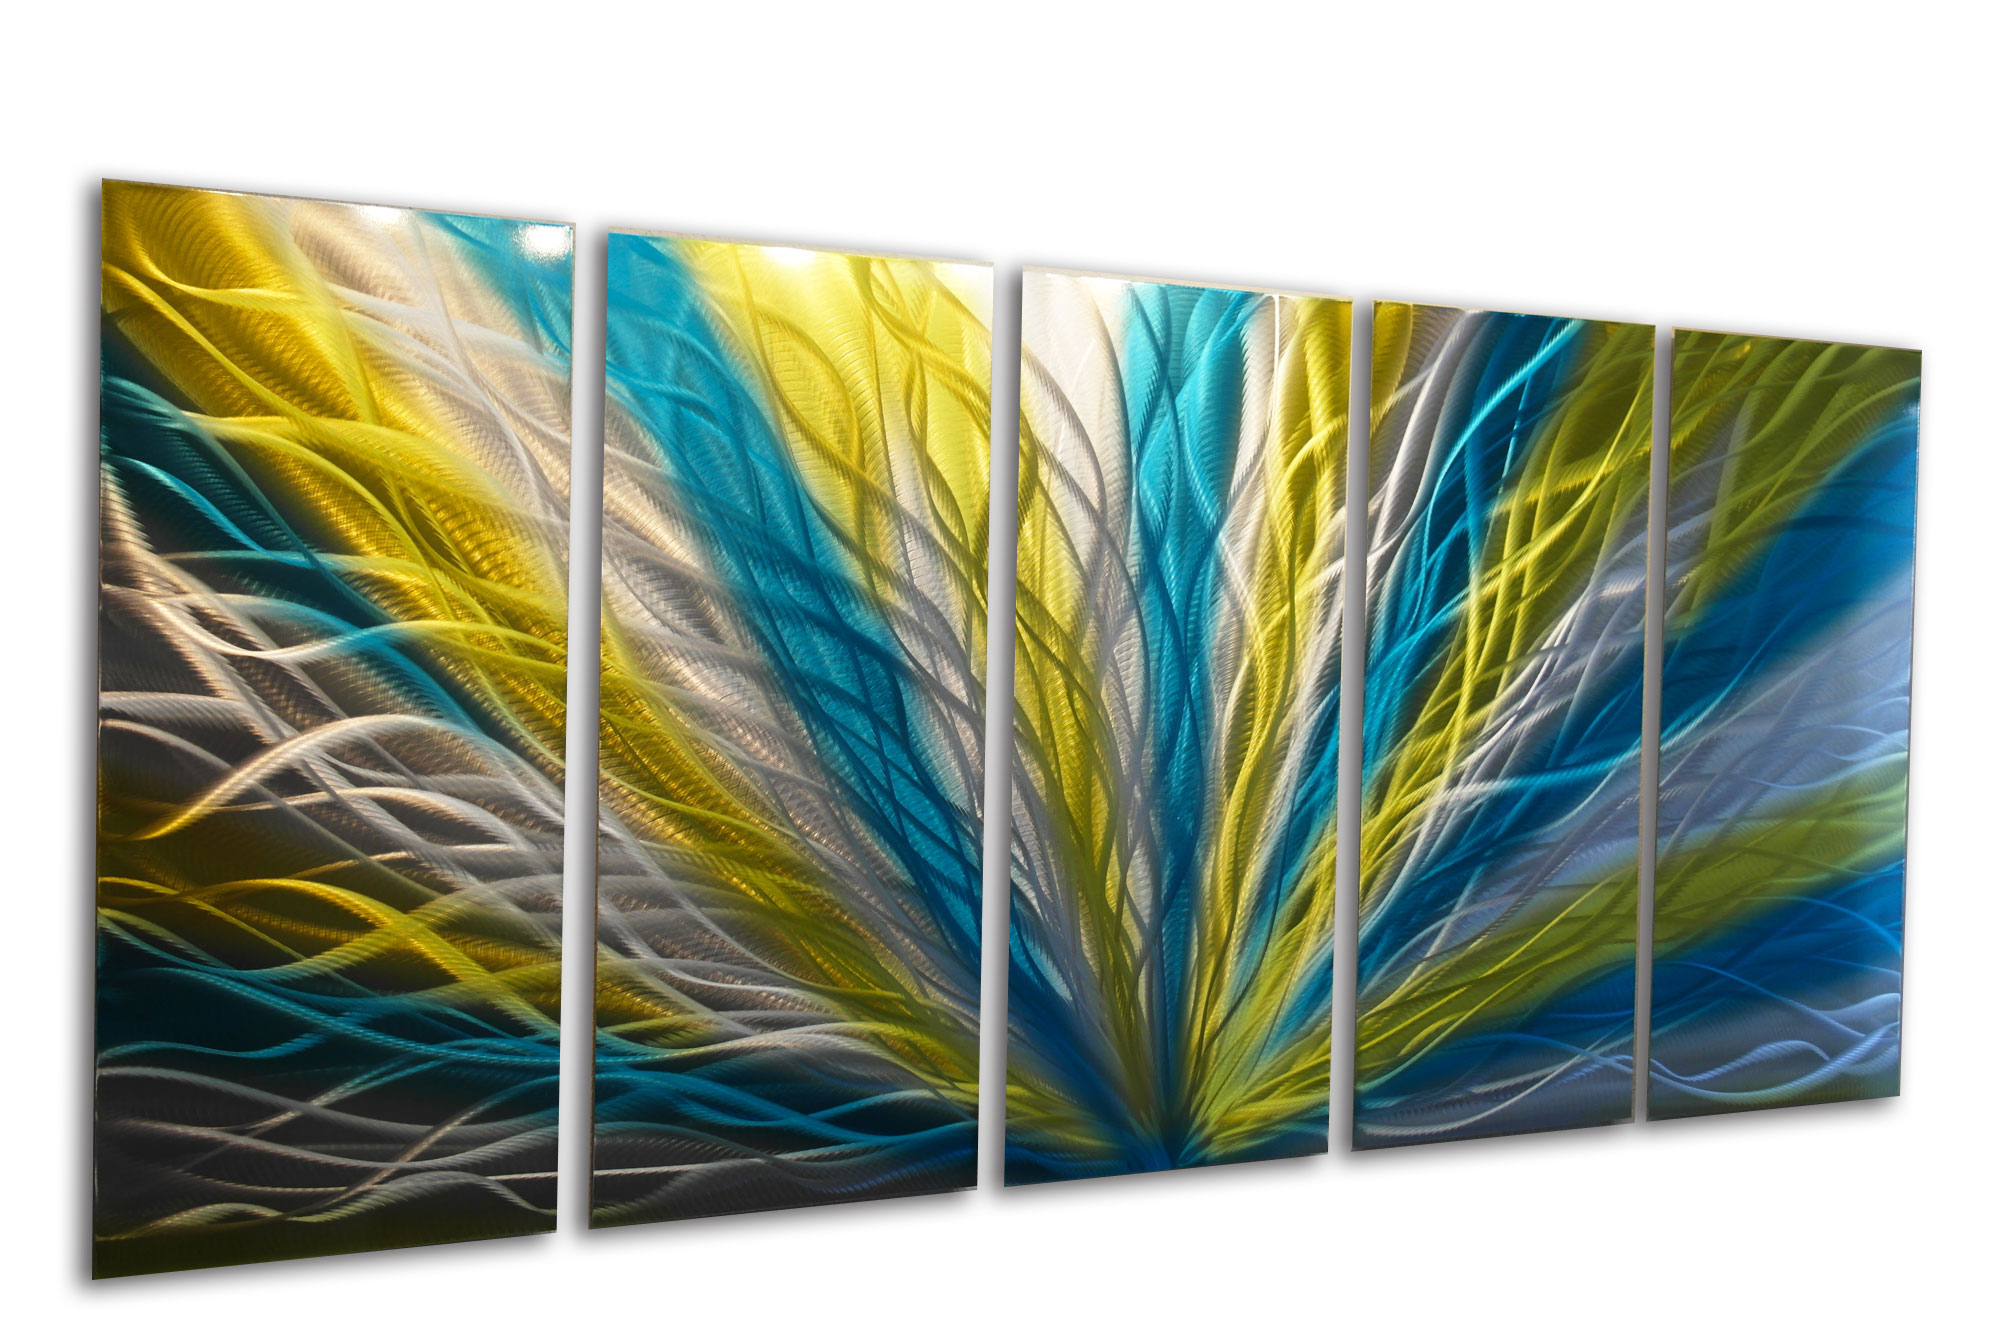 Blue Abstract Wall Decor : Radiance blue yellow metal wall art abstract